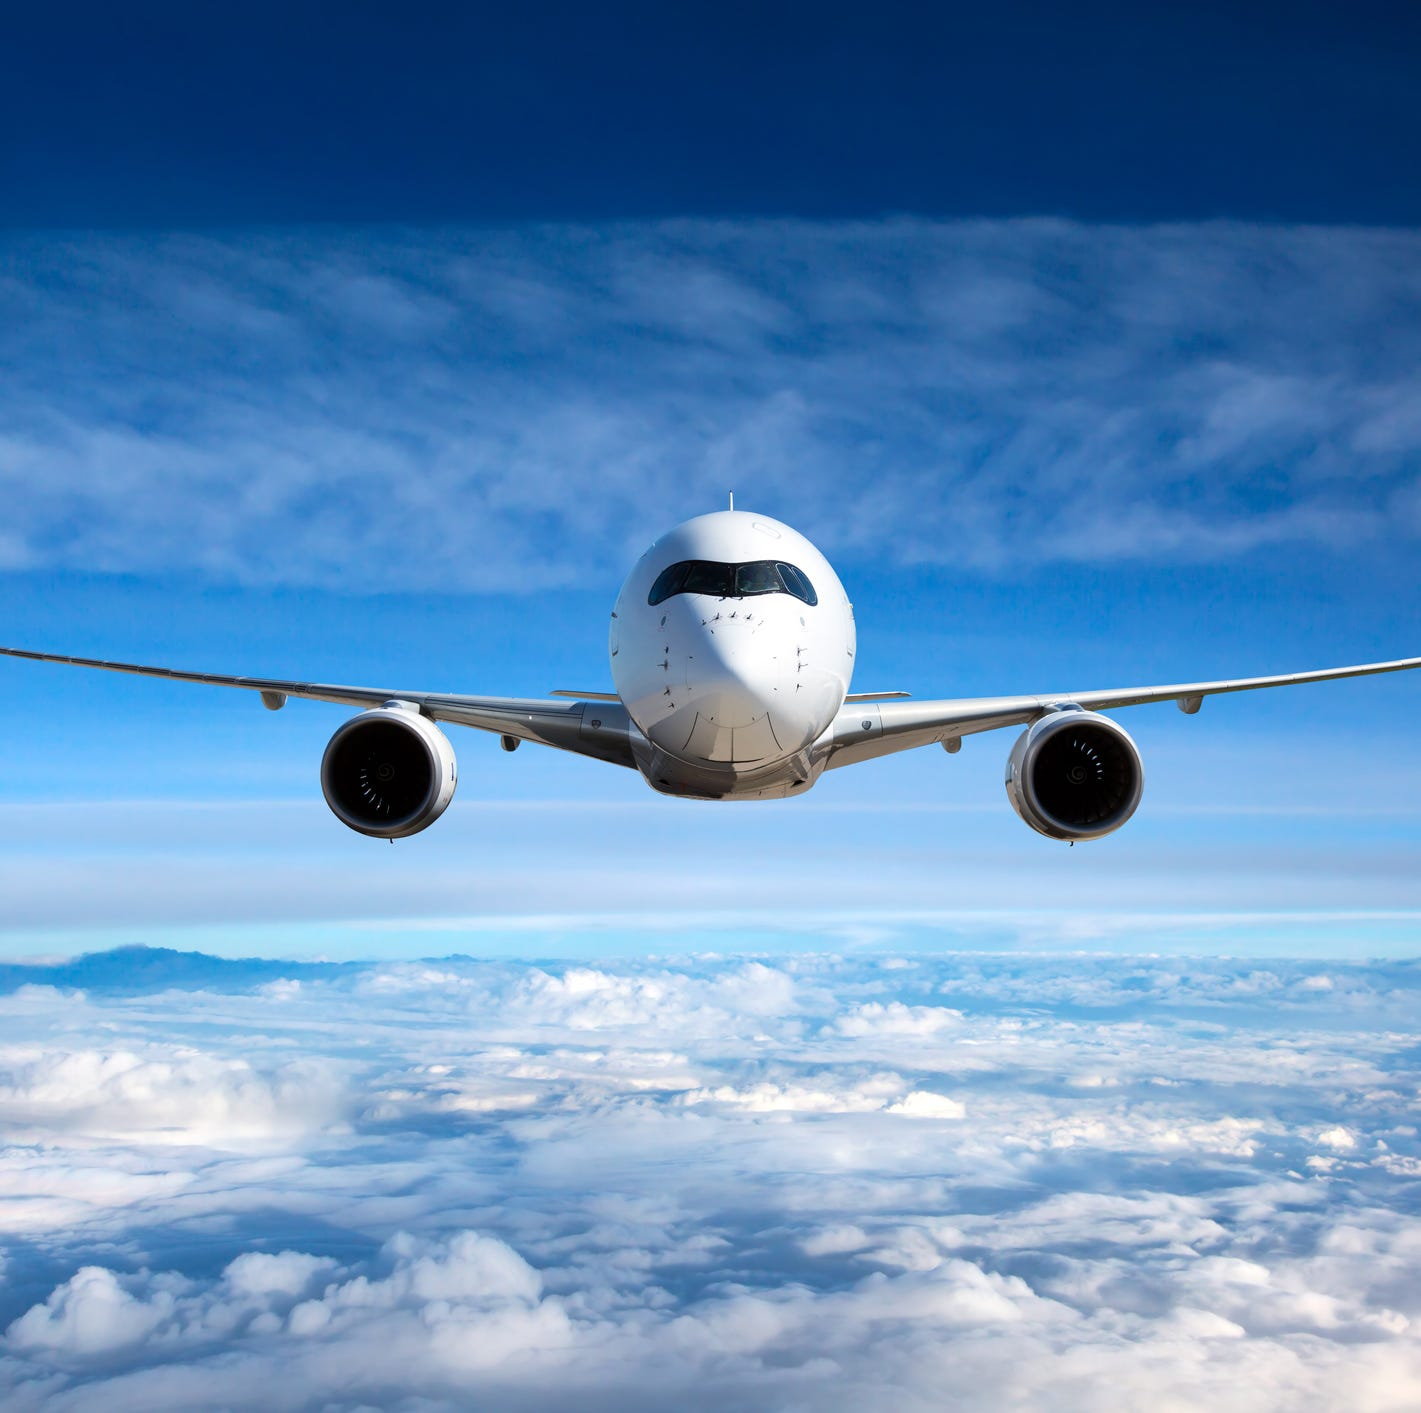 The accident rate for corporate aviation is hard to determine, but studies showa higher accident risk in taking a business jet over a commercial airliner, though both are considered extremely safe.